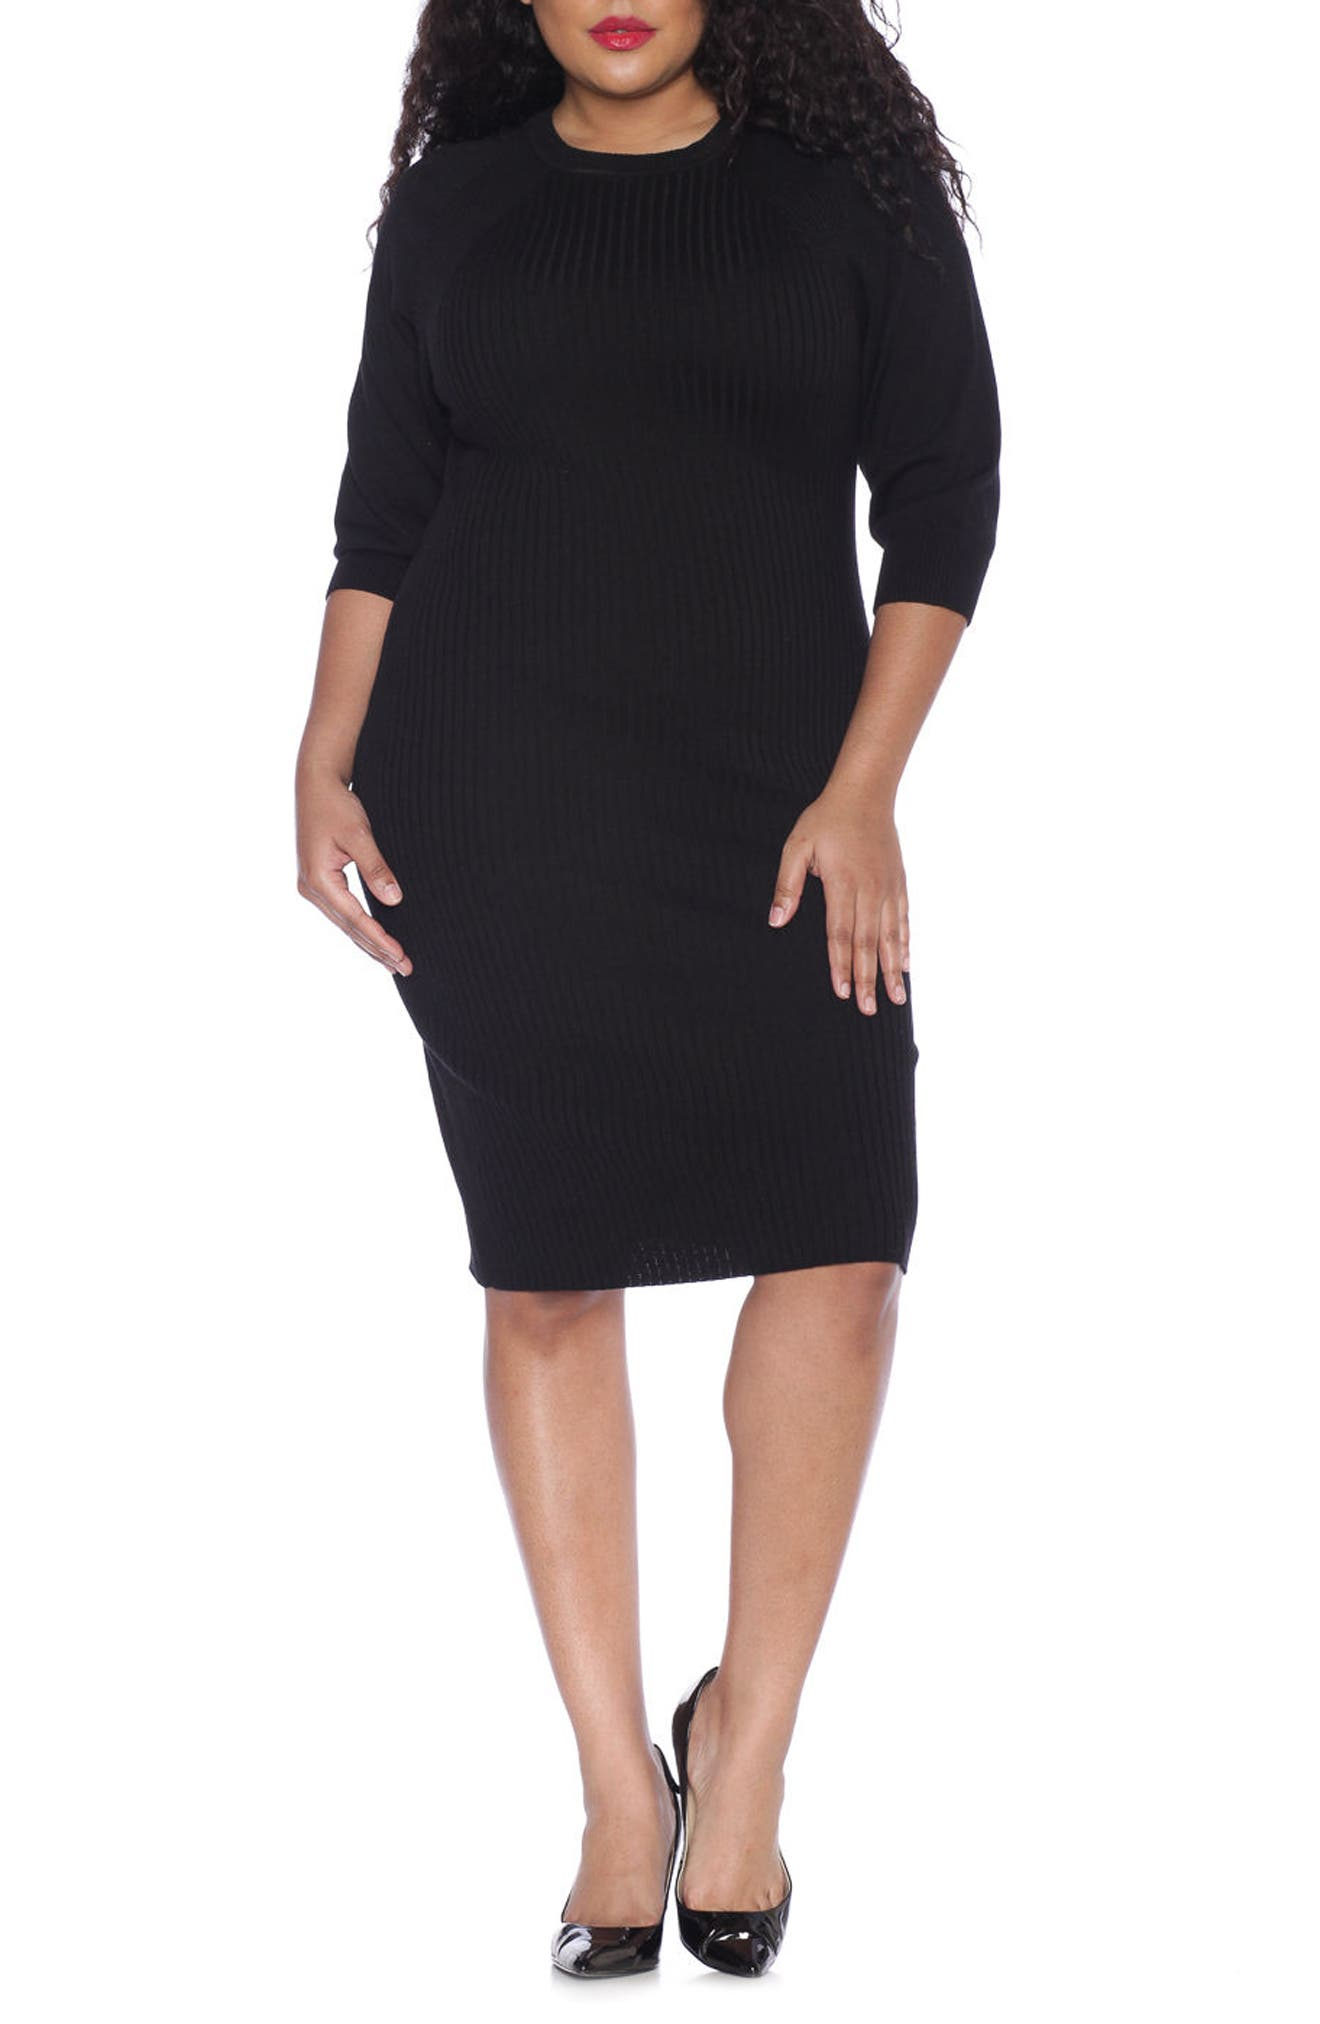 Main Image - SLINK Jeans Ribbed Sweater Dress (Plus Size)